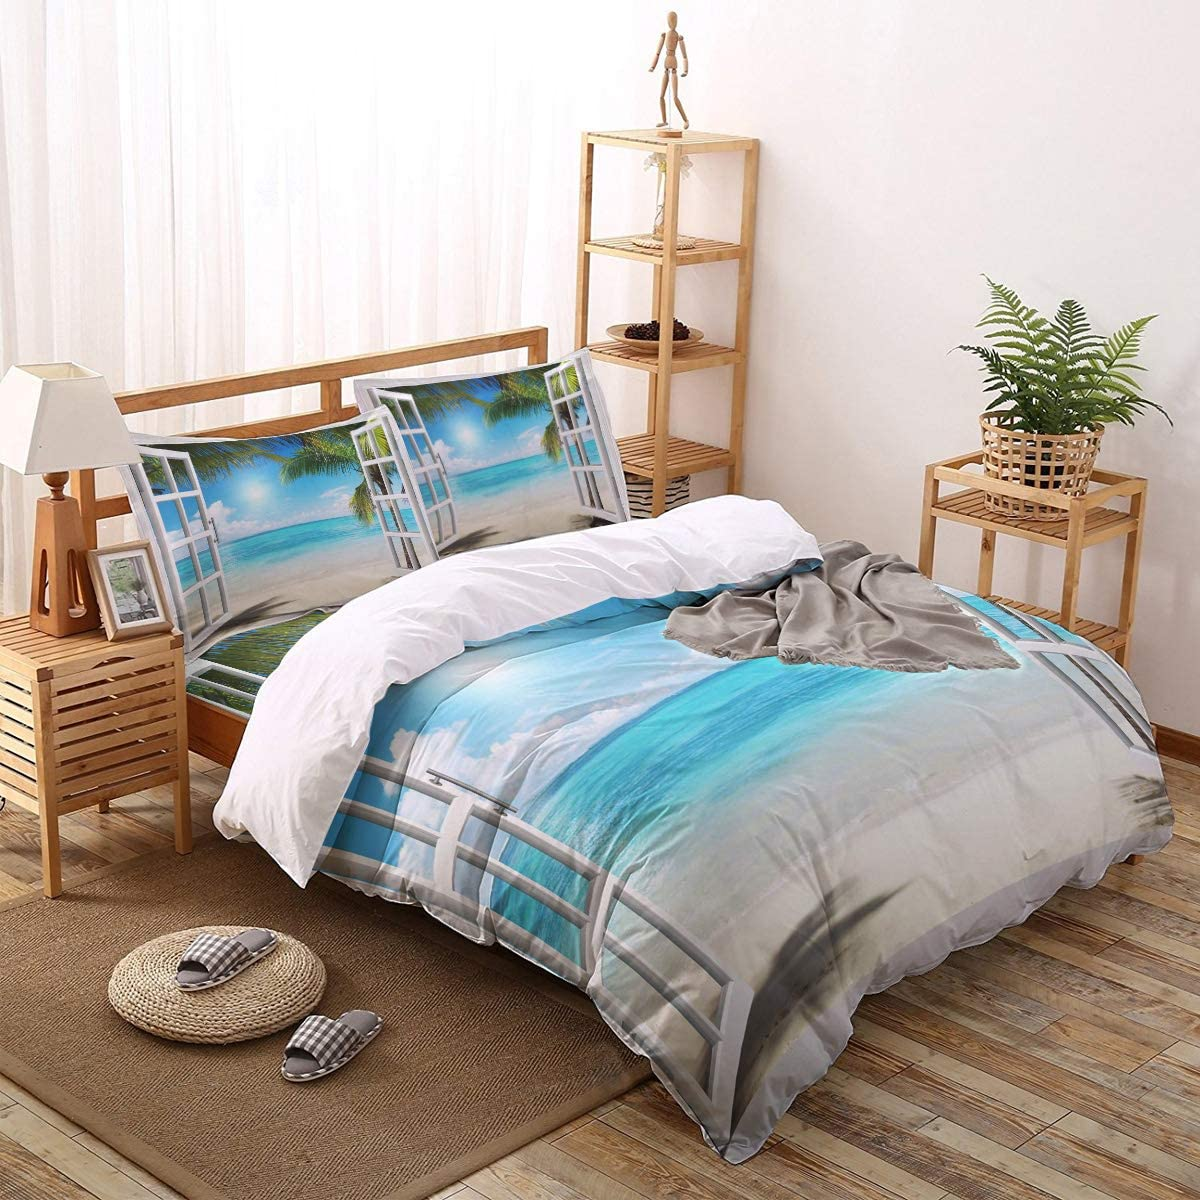 4 PCS Bedding Set Beach Sea Omaha Mall and Window Trees Ranking TOP9 Coconut The outside